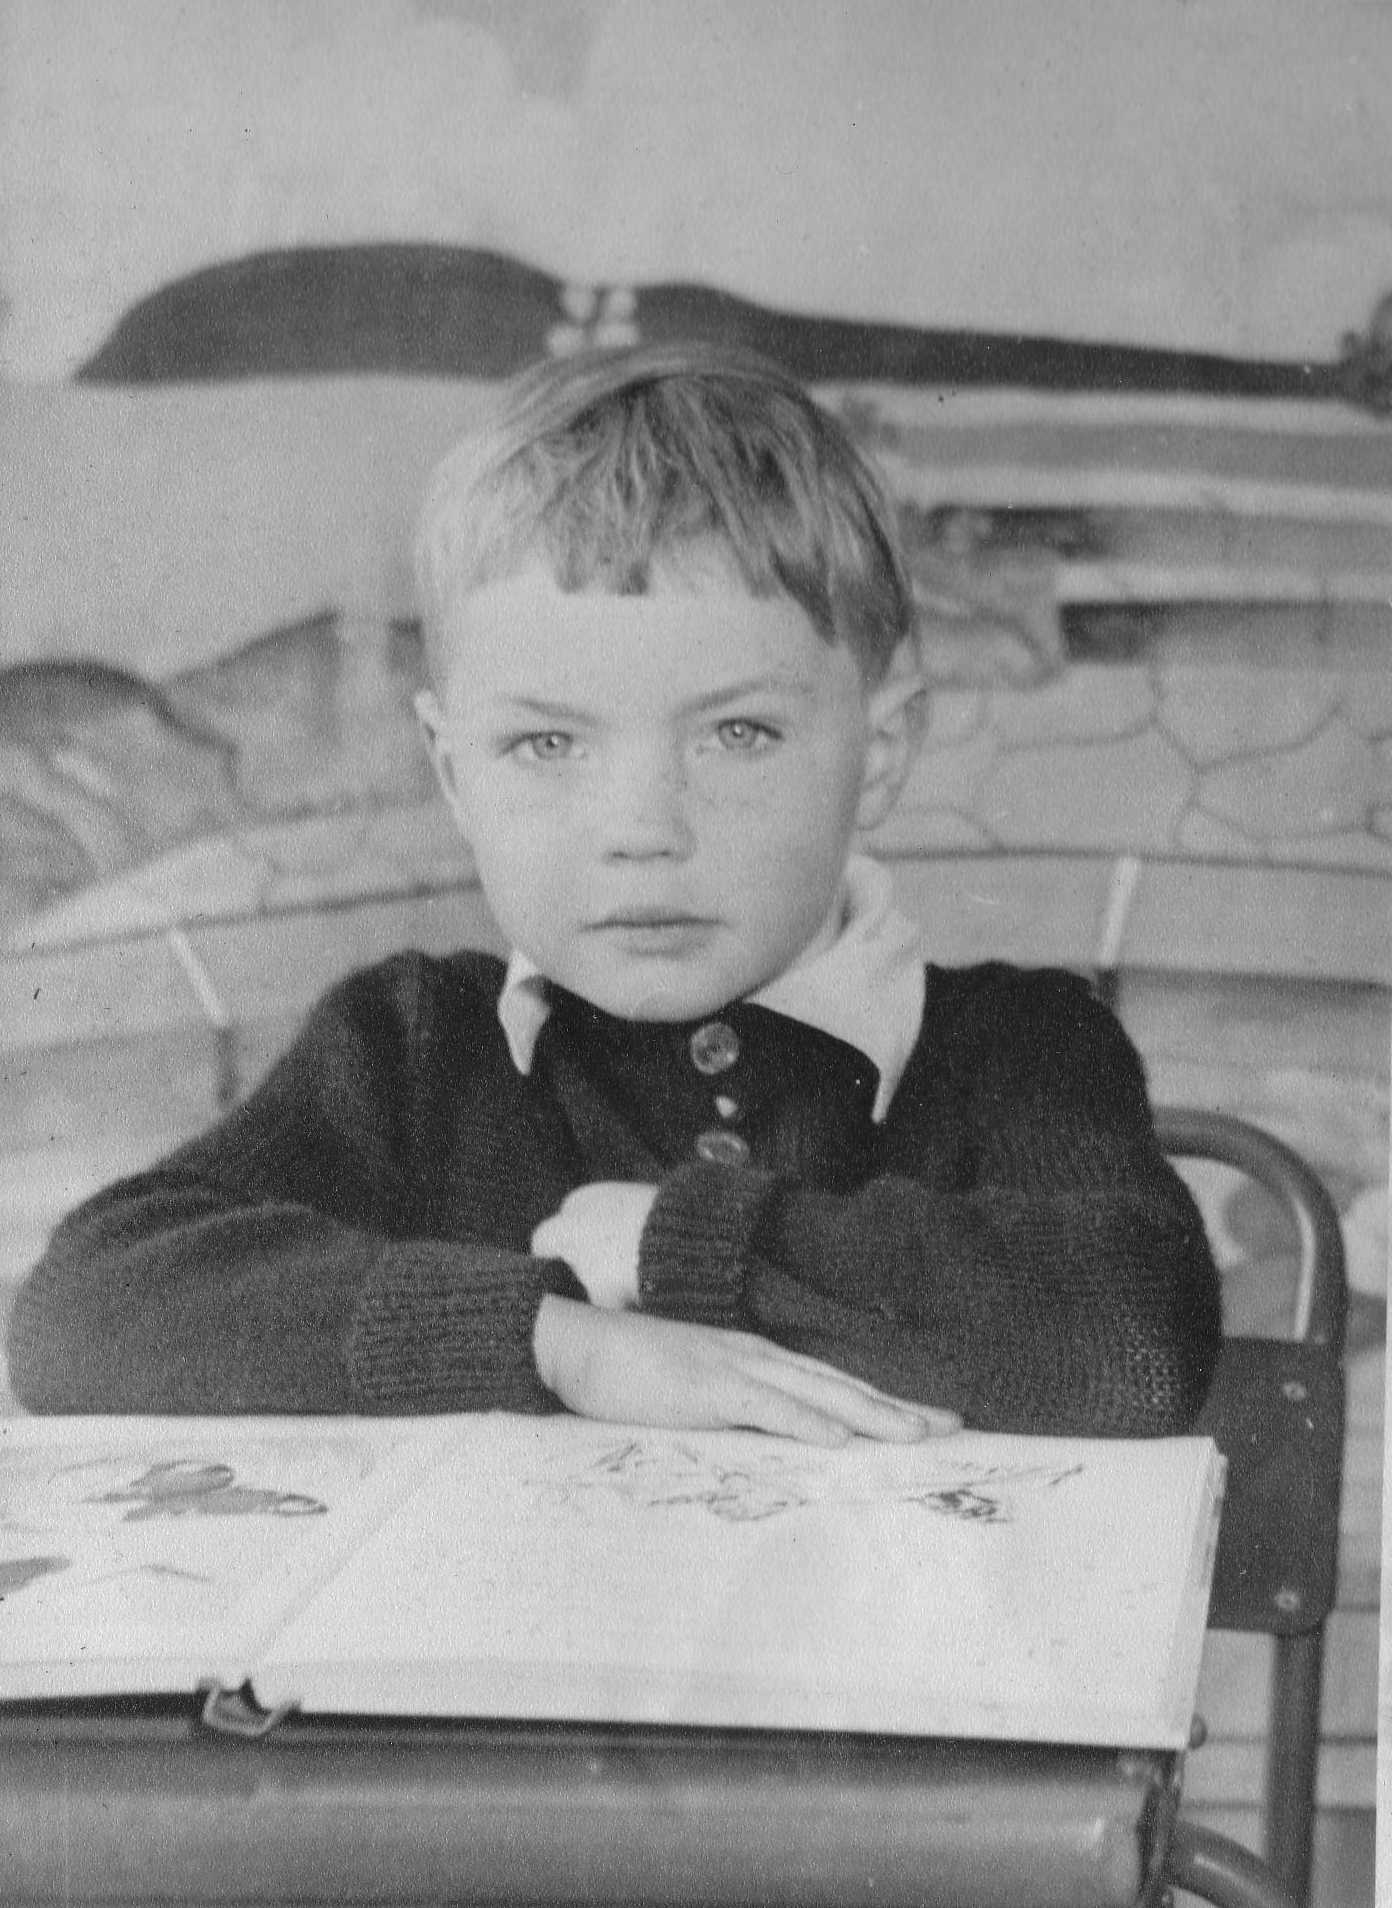 Young Boy At Desk At Fernieside Primary School 1952